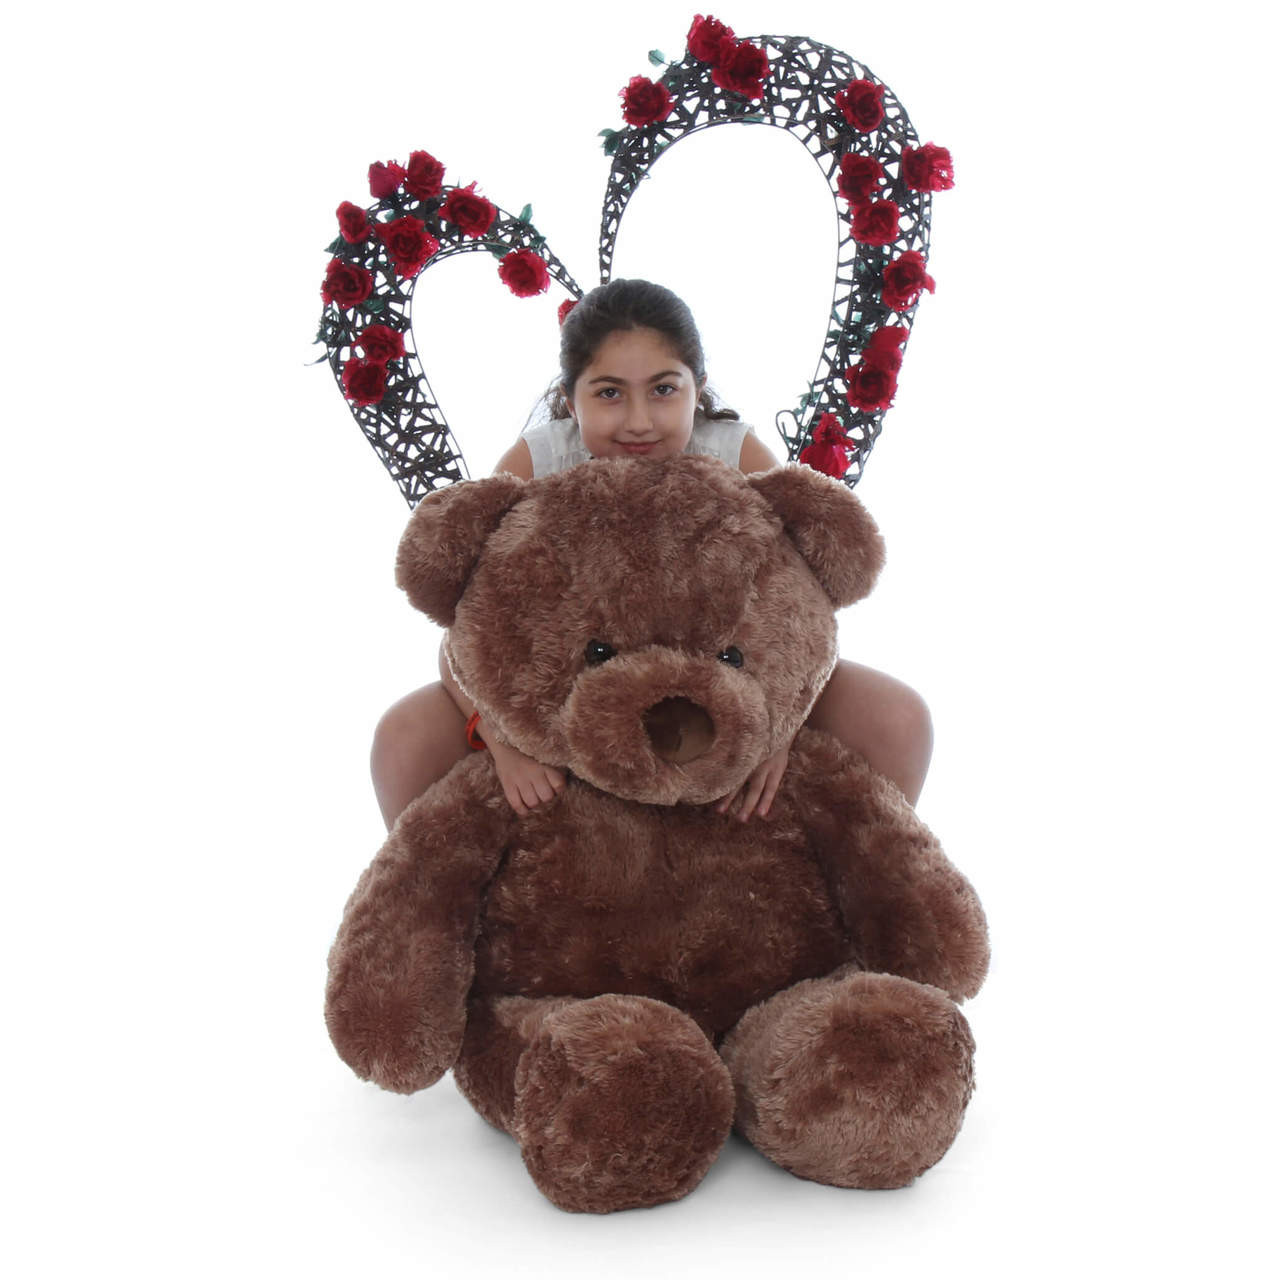 Chubs is a huge 48in (4ft) teddy bear with mocha brown fur